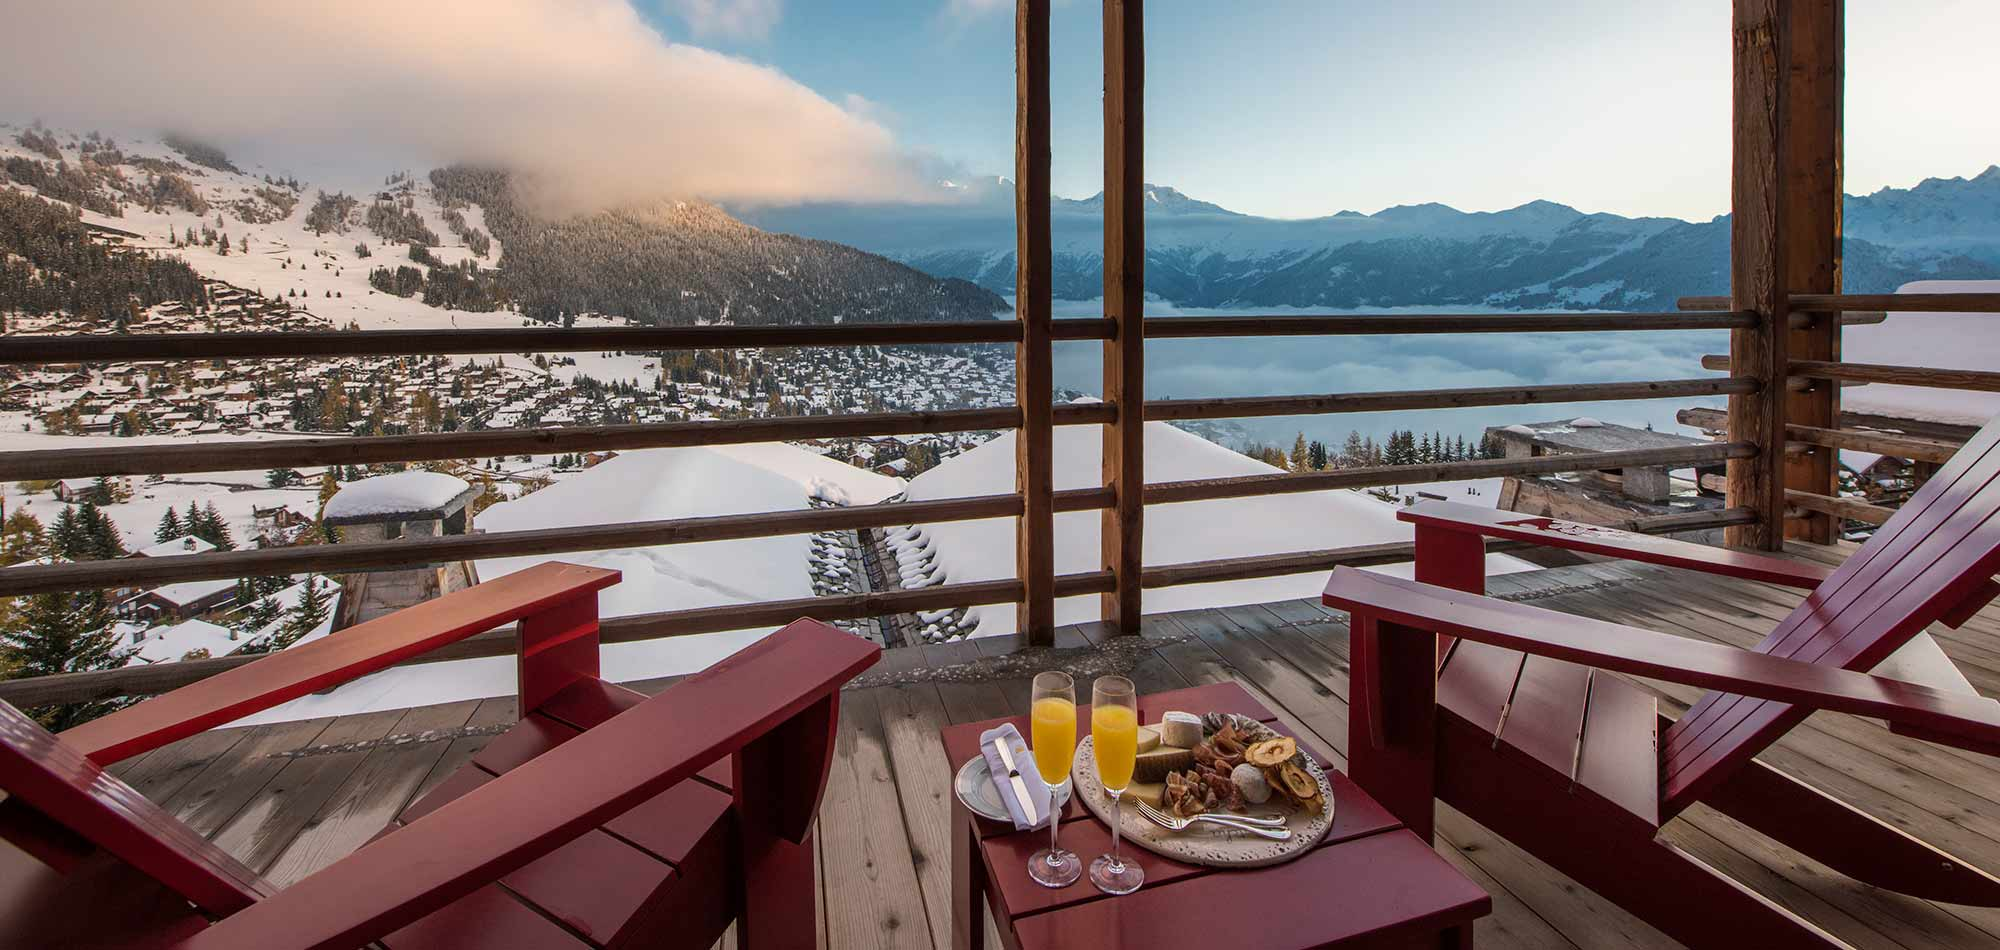 mon_izba_verbier_switzerland_luxury_ski_chalet_terrace